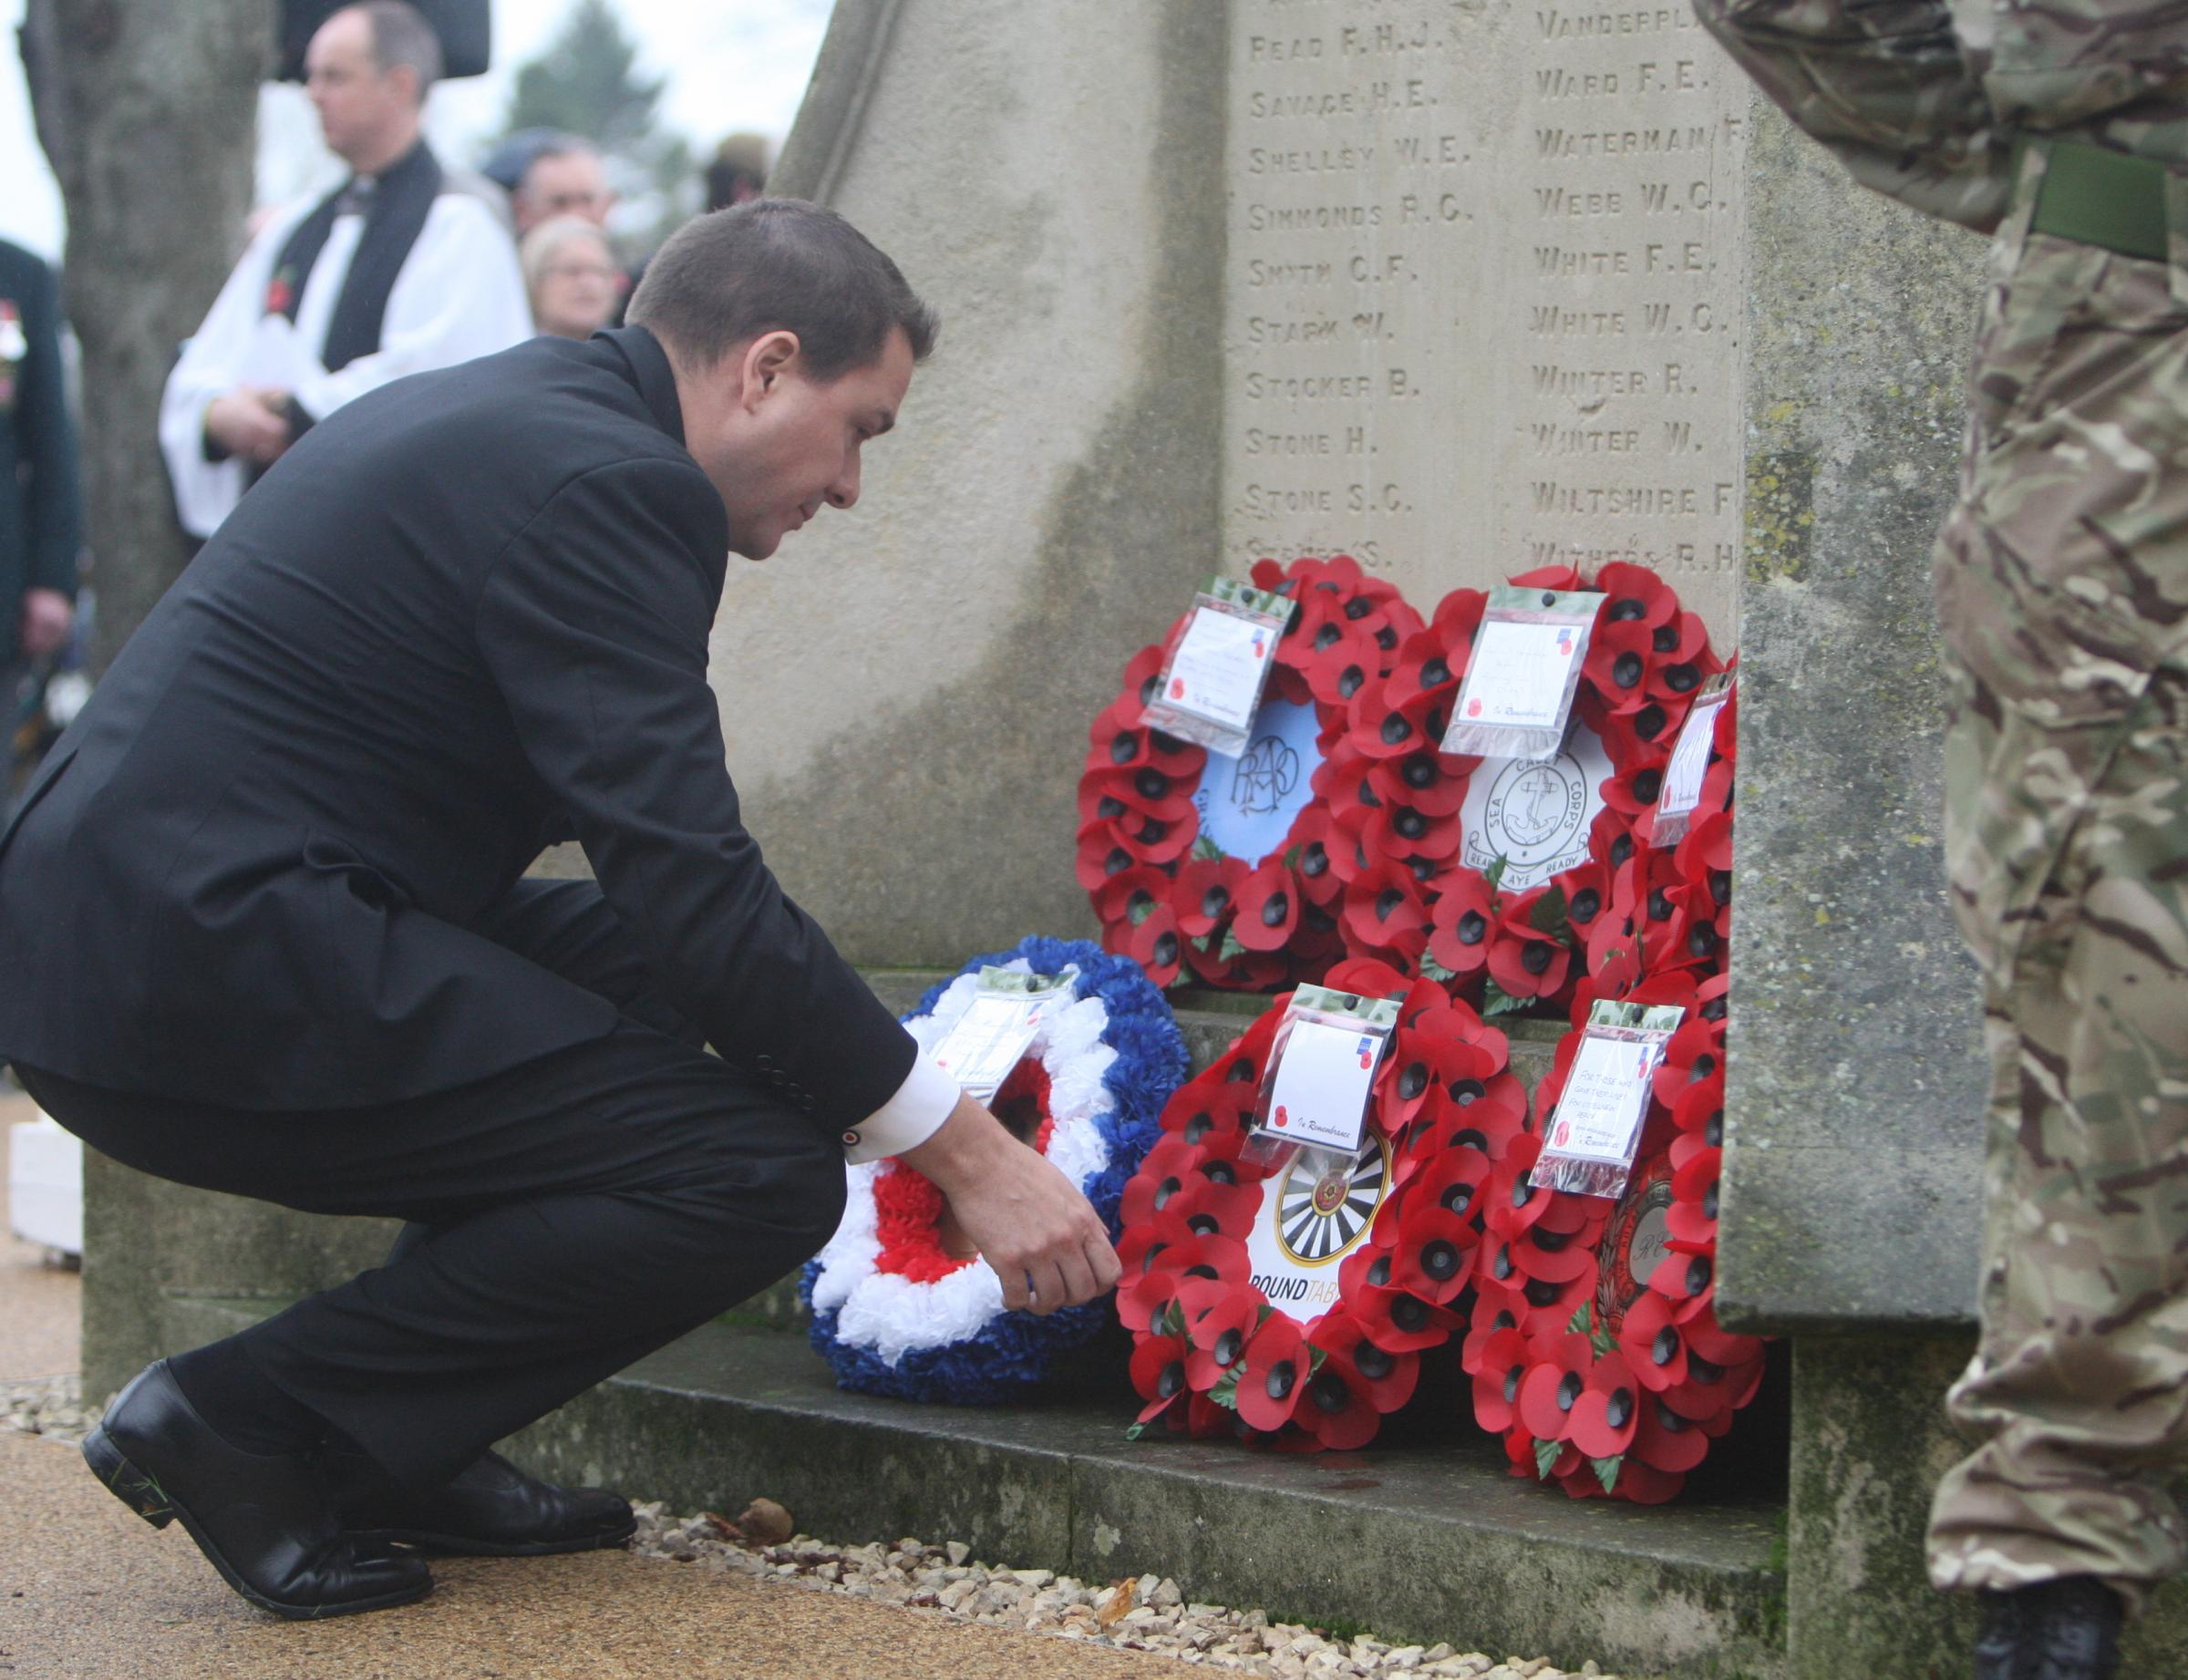 Several events will be run in Romsey ahead of November 11. 